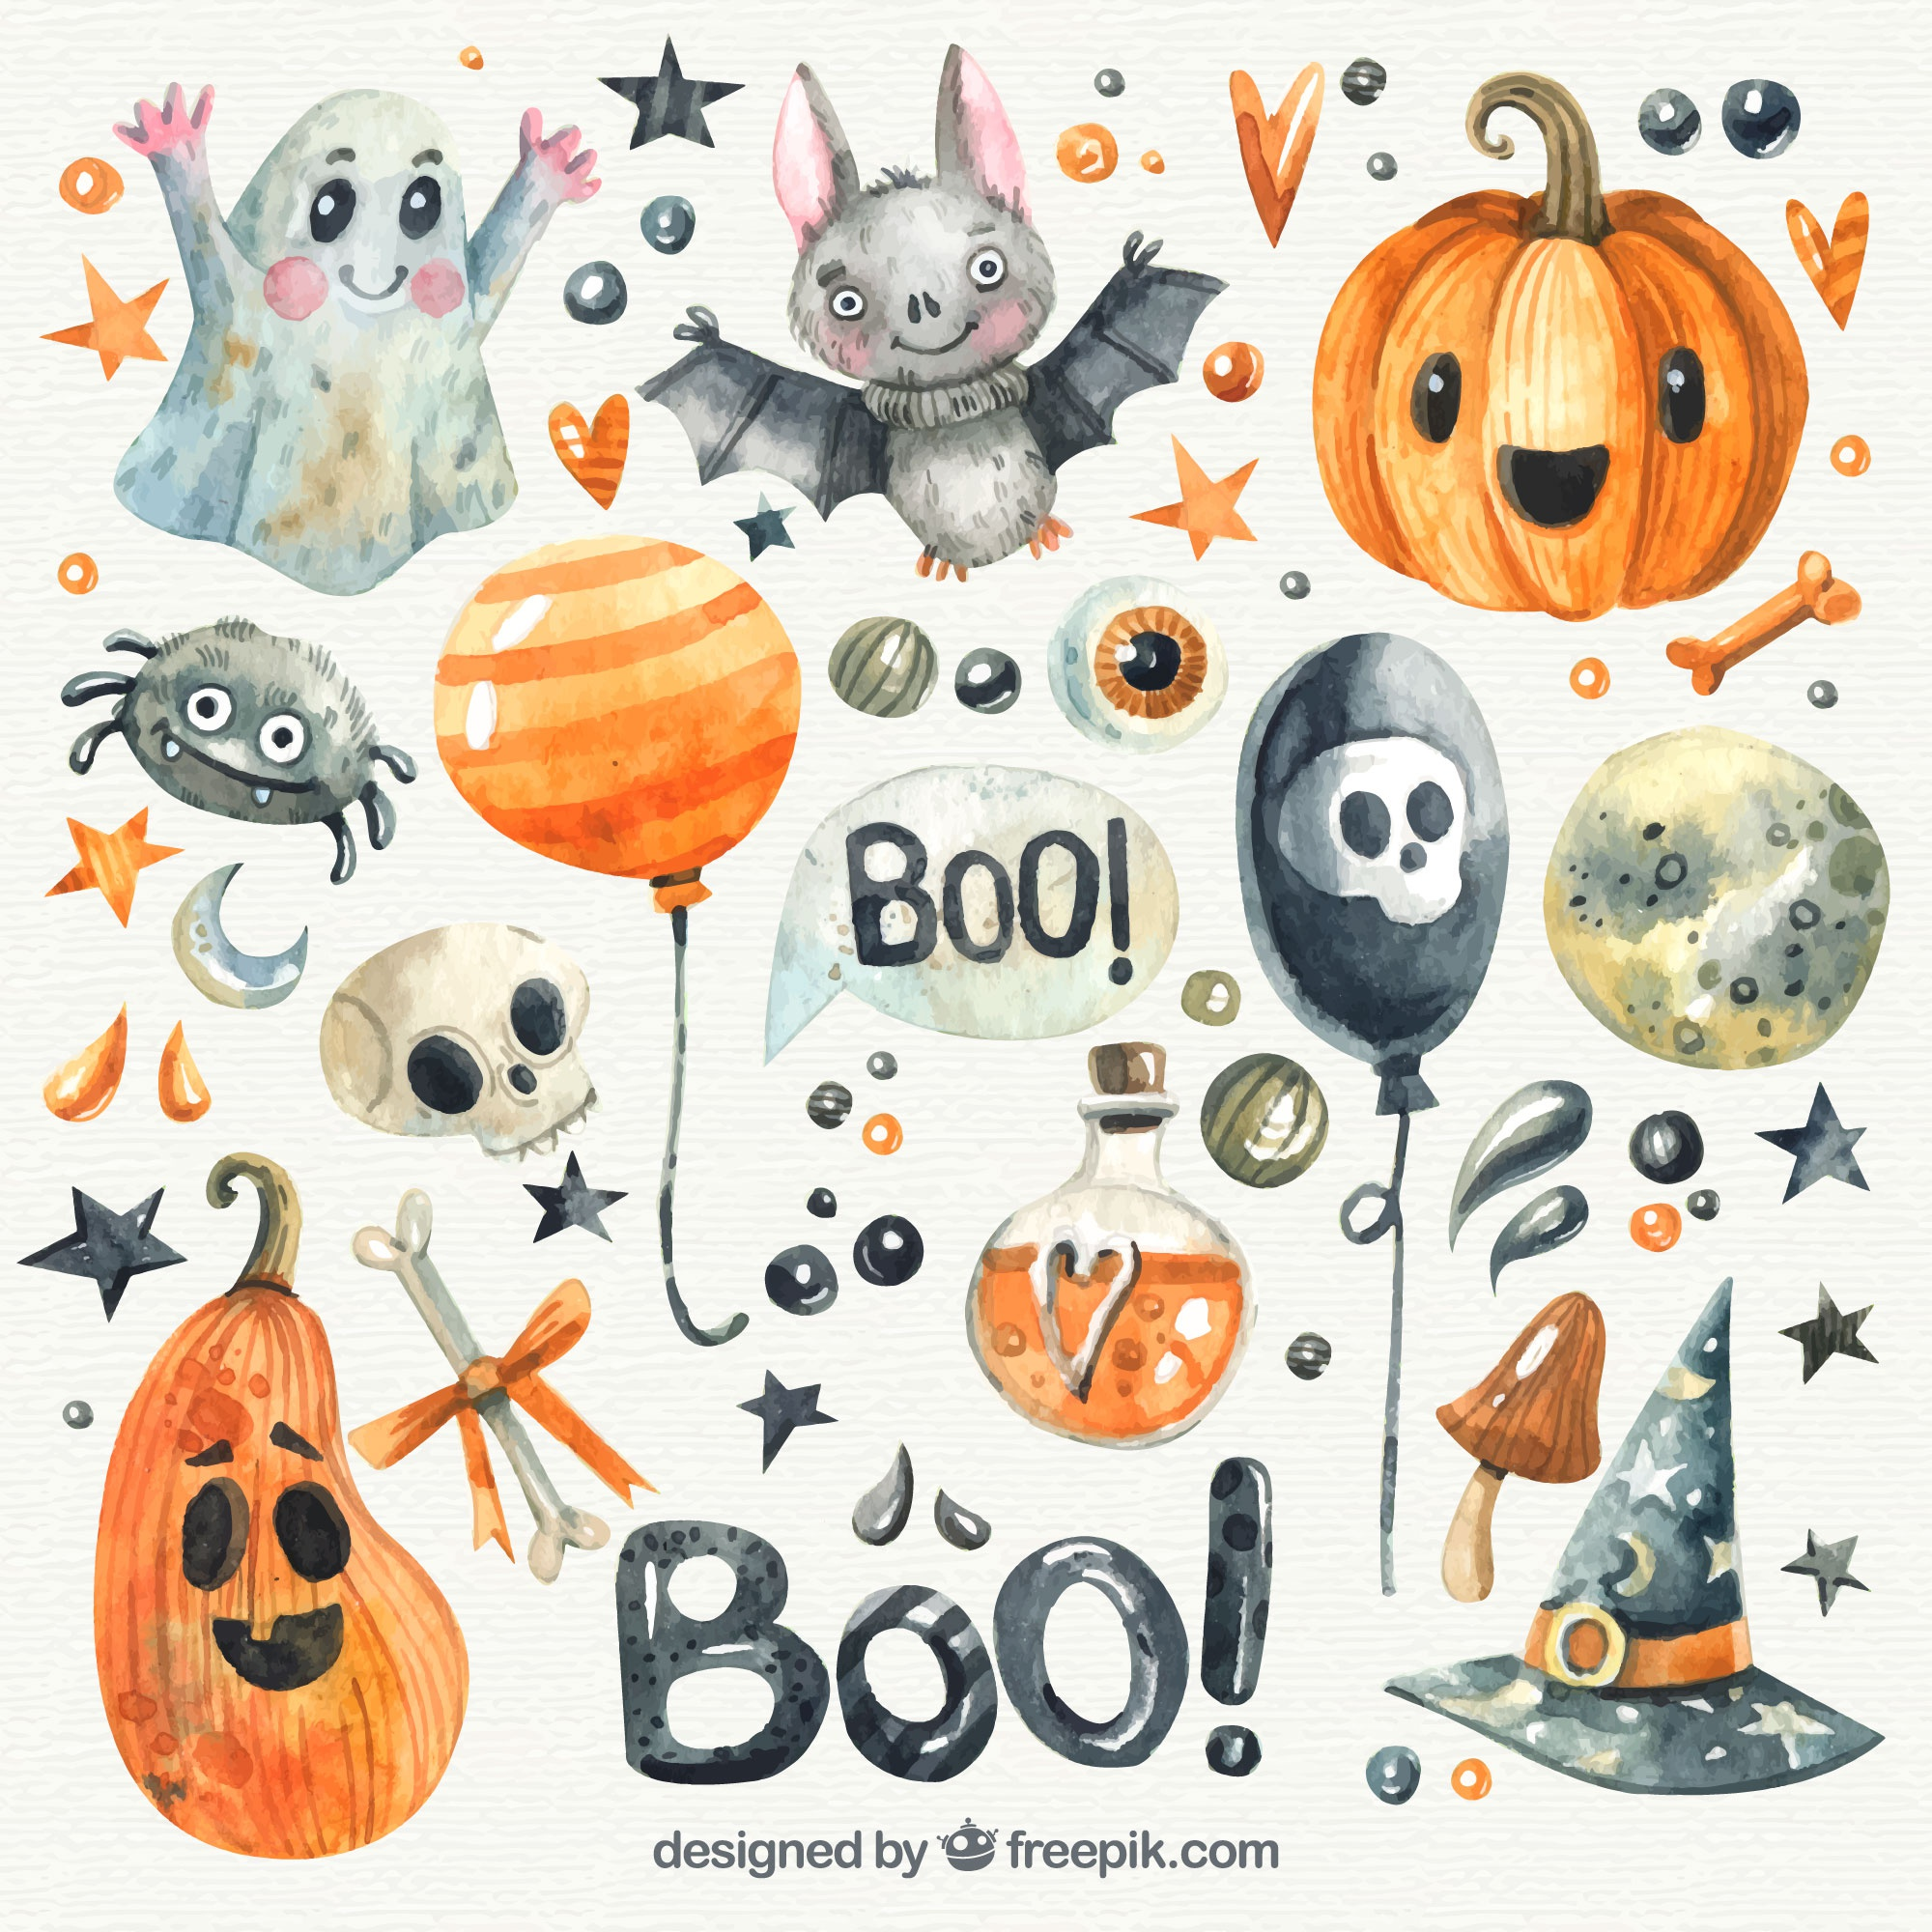 Mooie aquarel Halloween collectie